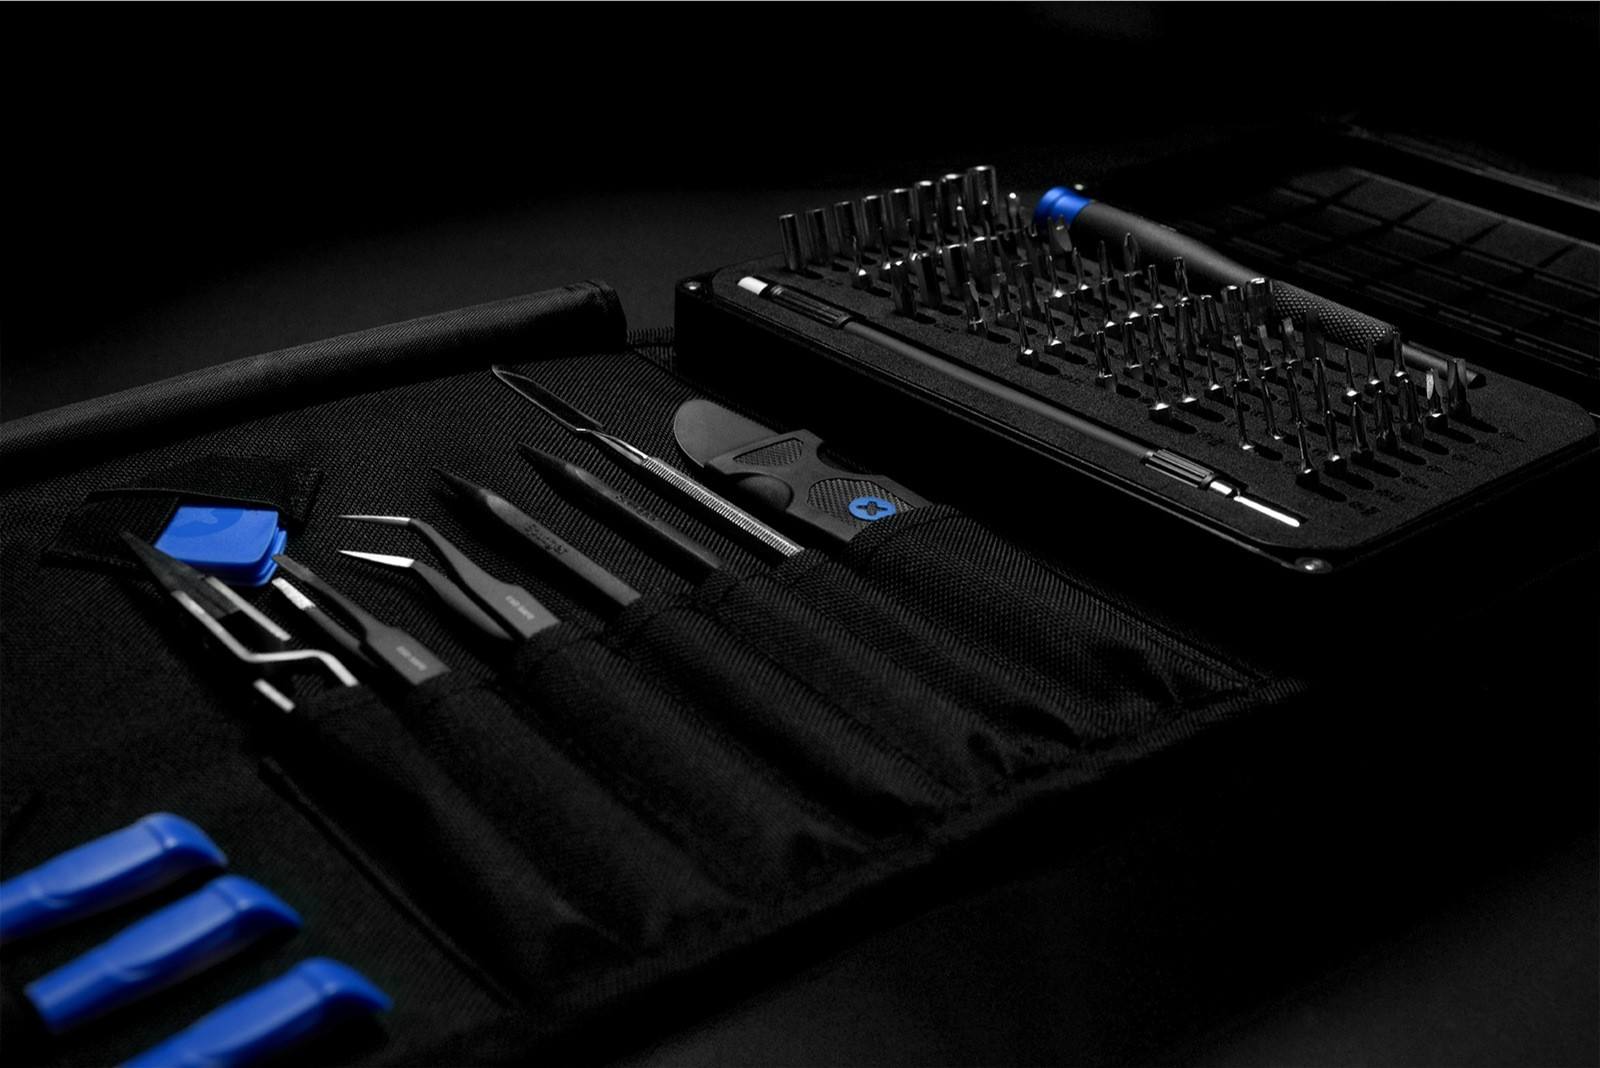 iFixit All-new Pro Tech Toolkit, IF145-307-4